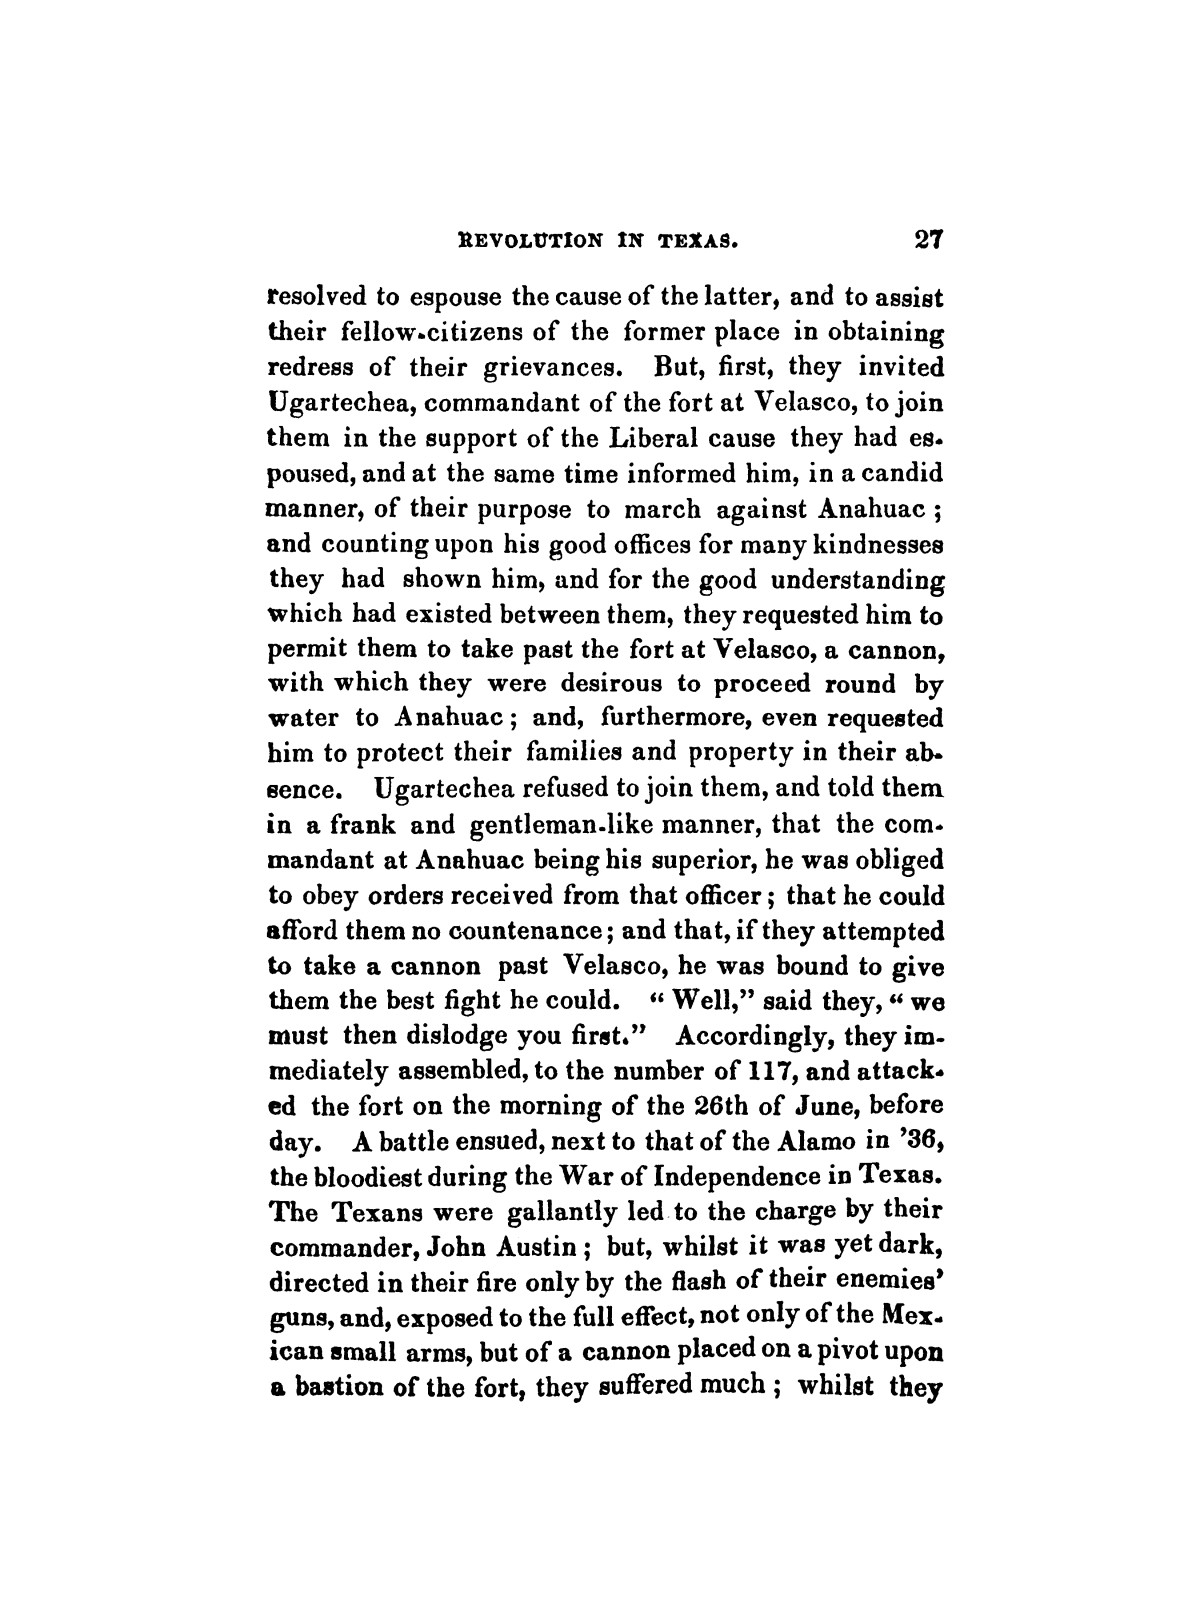 History of the revolution in Texas, particularly of the war of 1835 & '36; together with the latest geographical, topographical, and statistical accounts of the country, from the most authentic sources. Also, an appendix. By the Rev. C. Newell.                                                                                                      [Sequence #]: 39 of 227